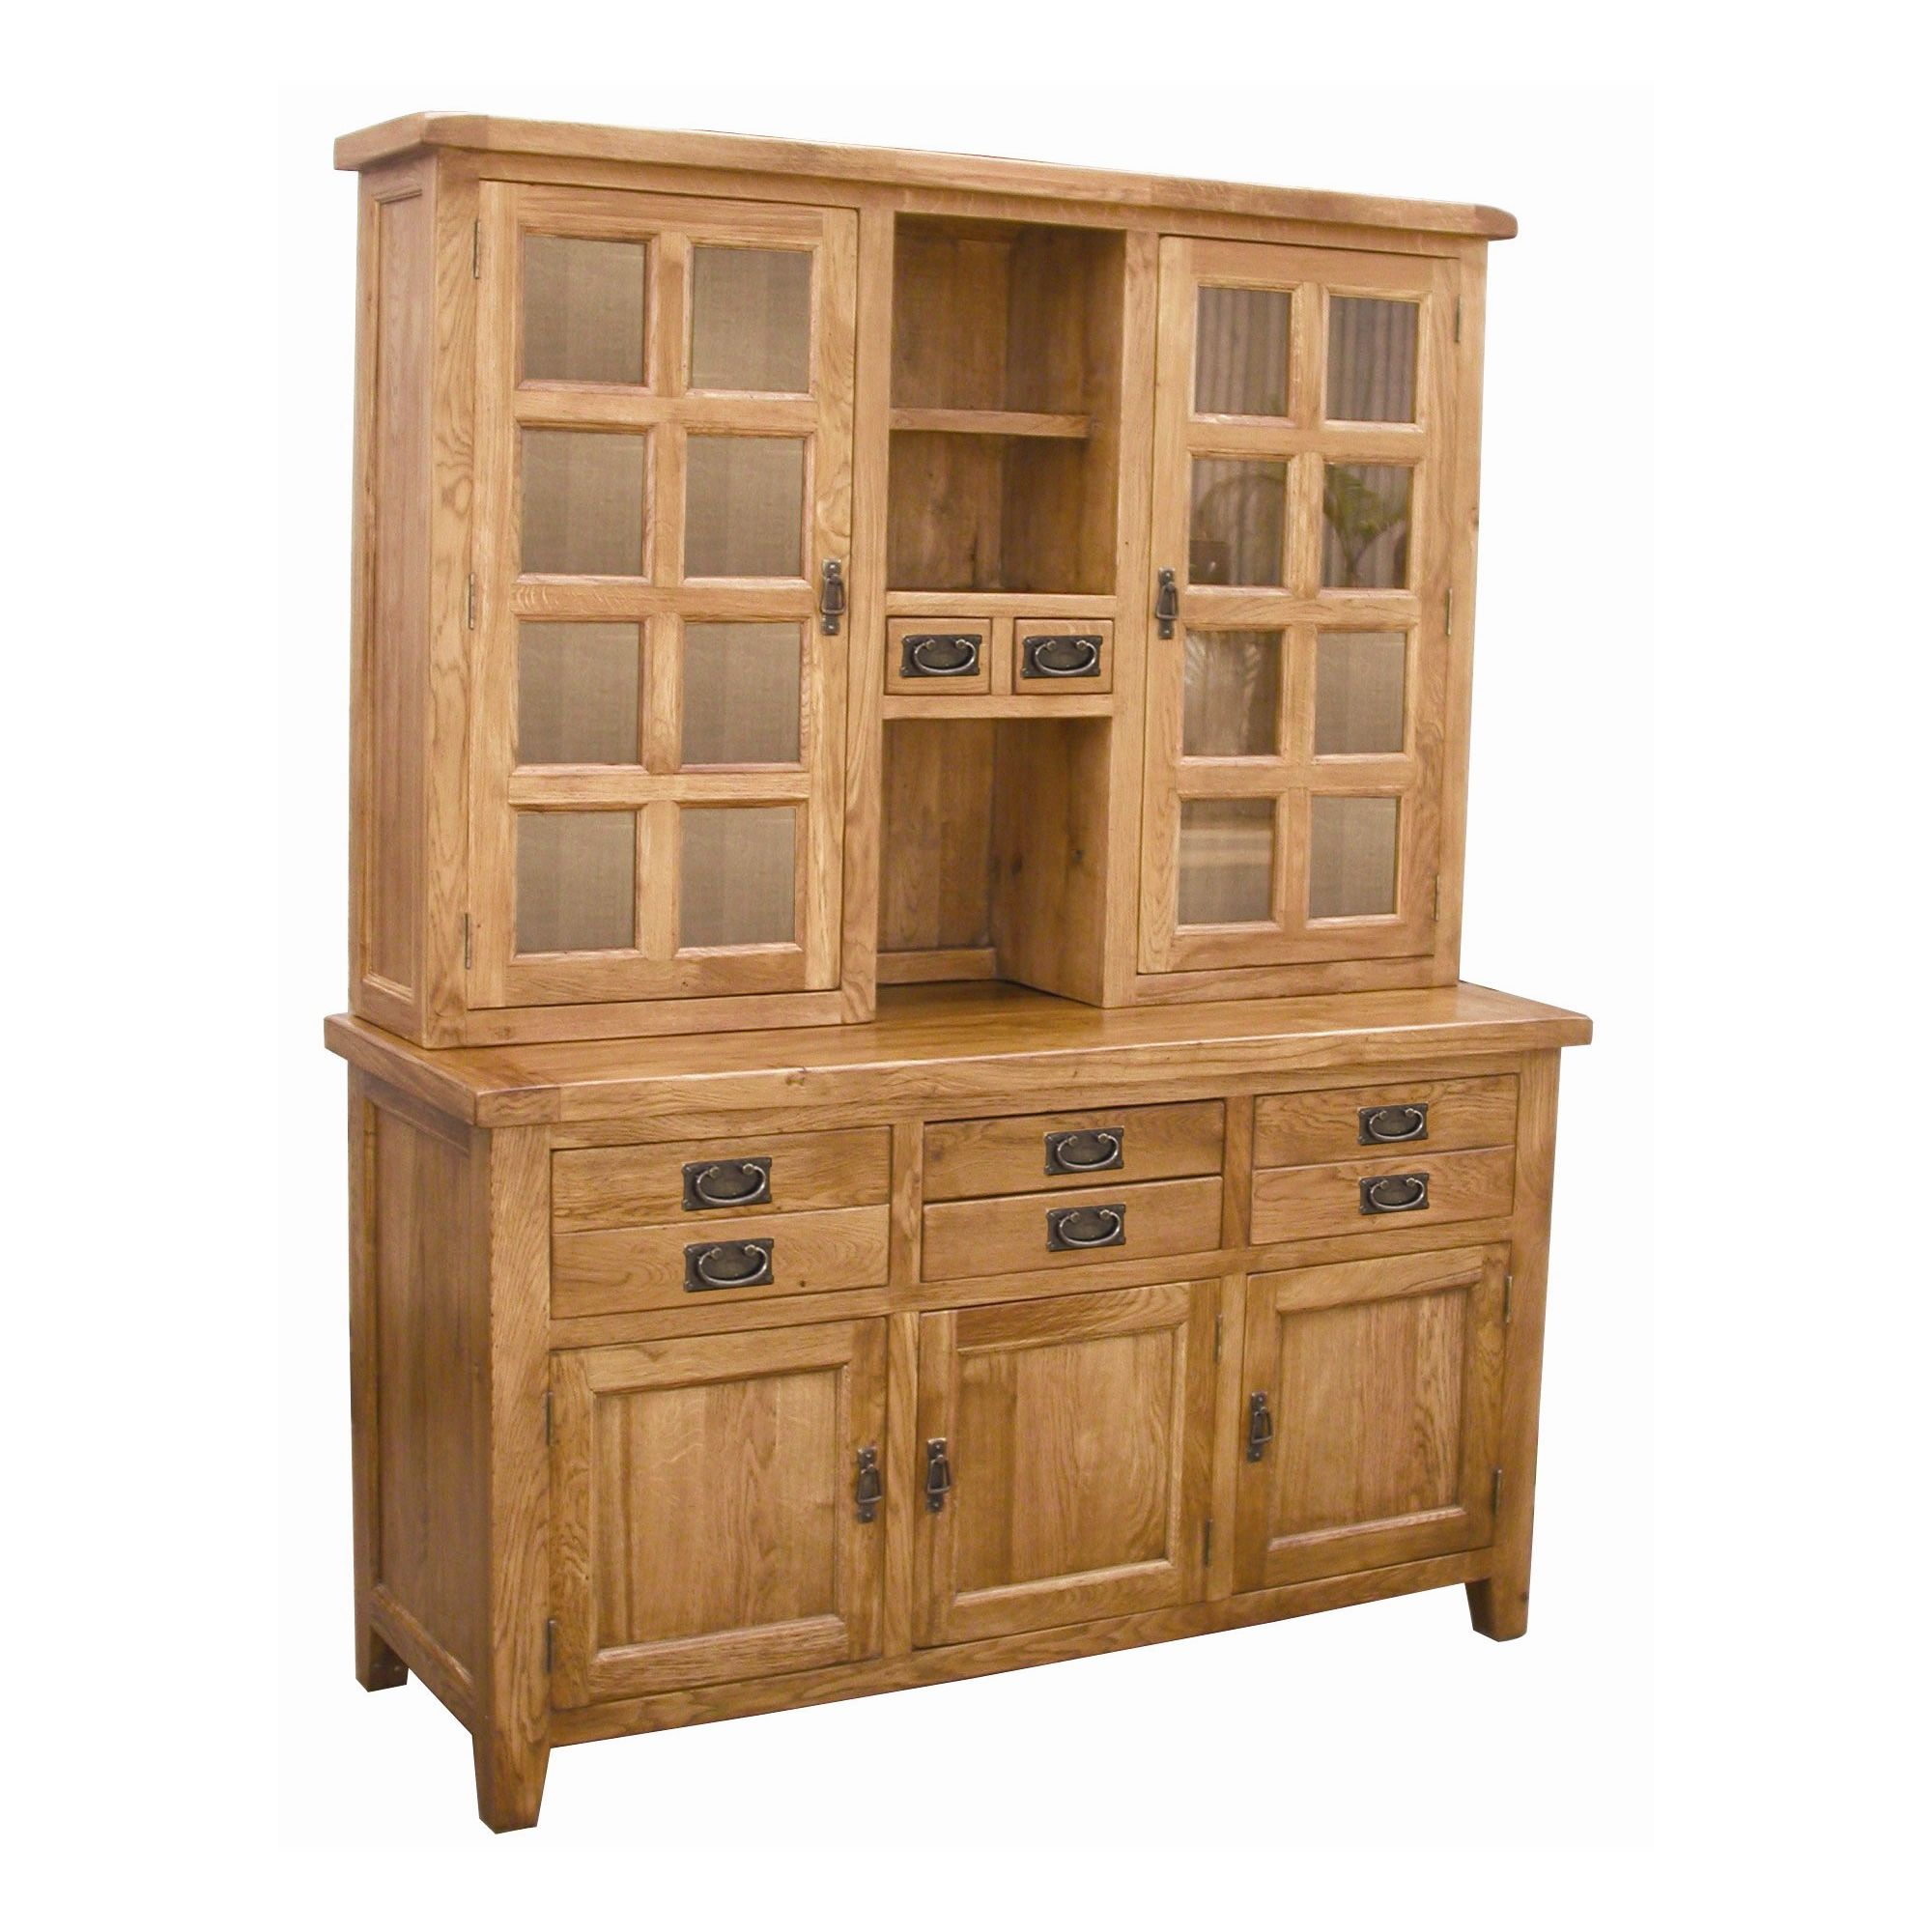 Wiseaction Florence Sideboard and Hutch with Clear Glass at Tesco Direct